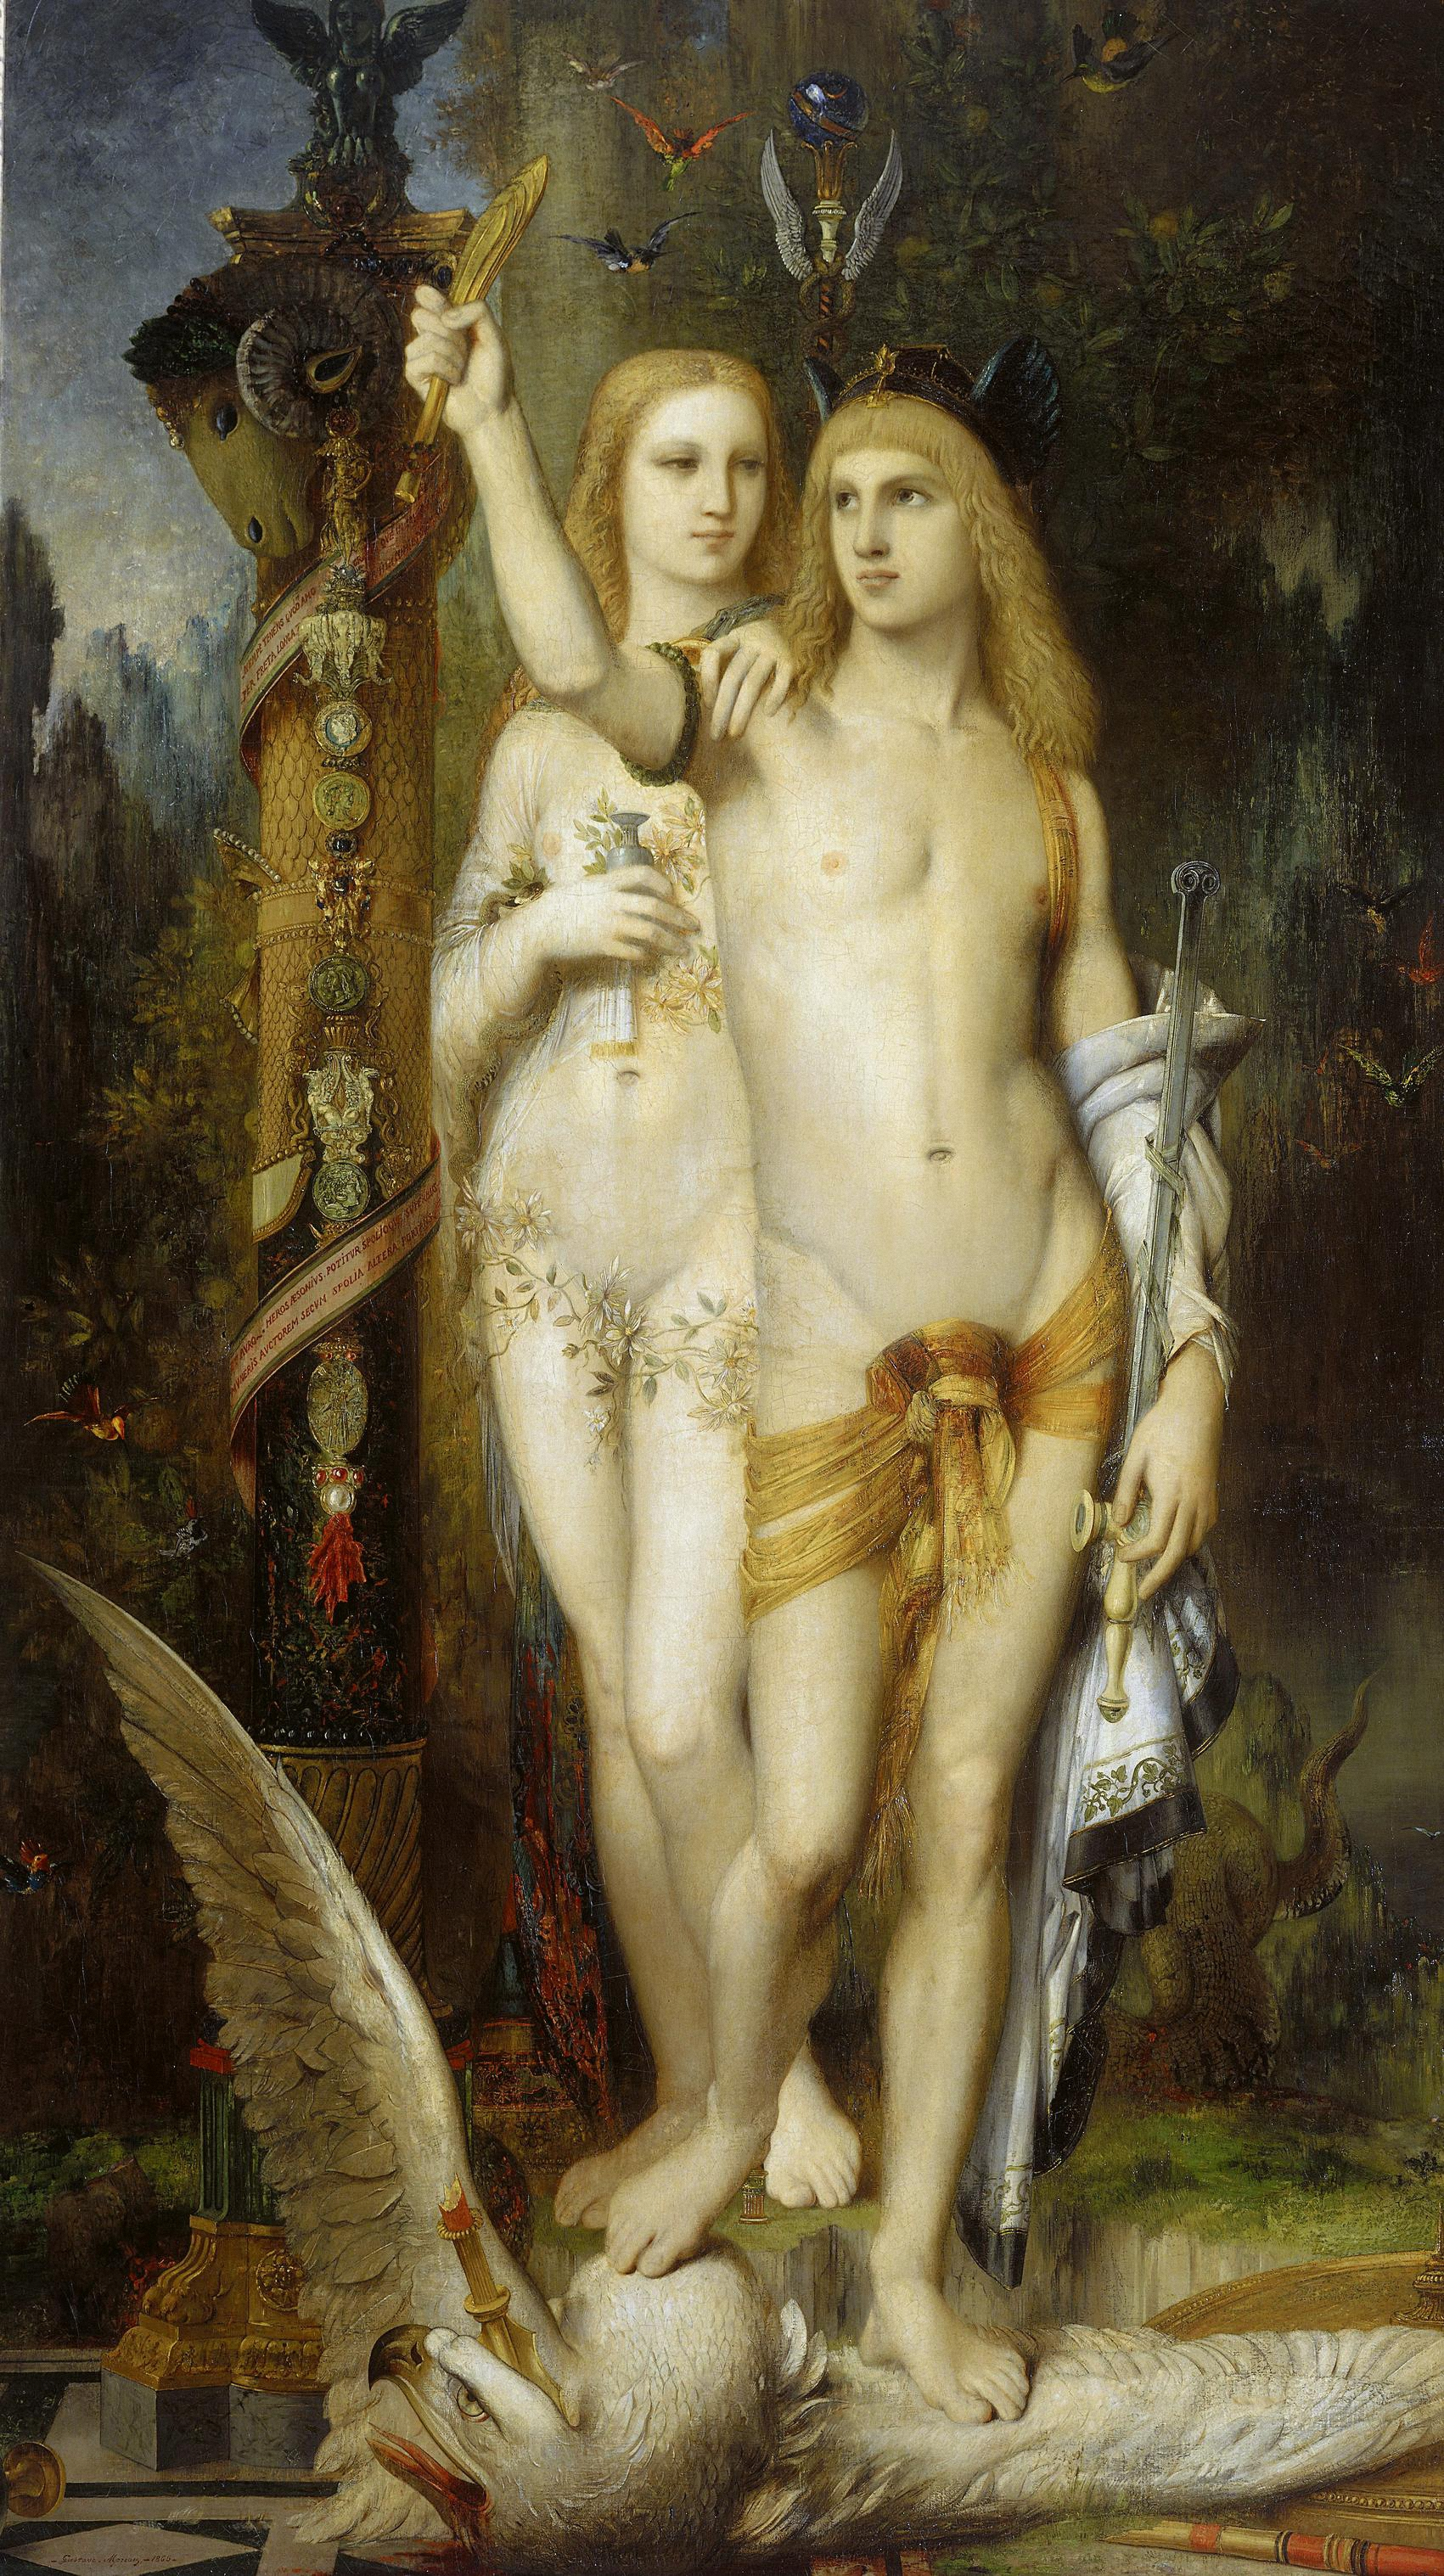 http://upload.wikimedia.org/wikipedia/commons/9/91/Moreau_-_Jason_et_Médée.jpg